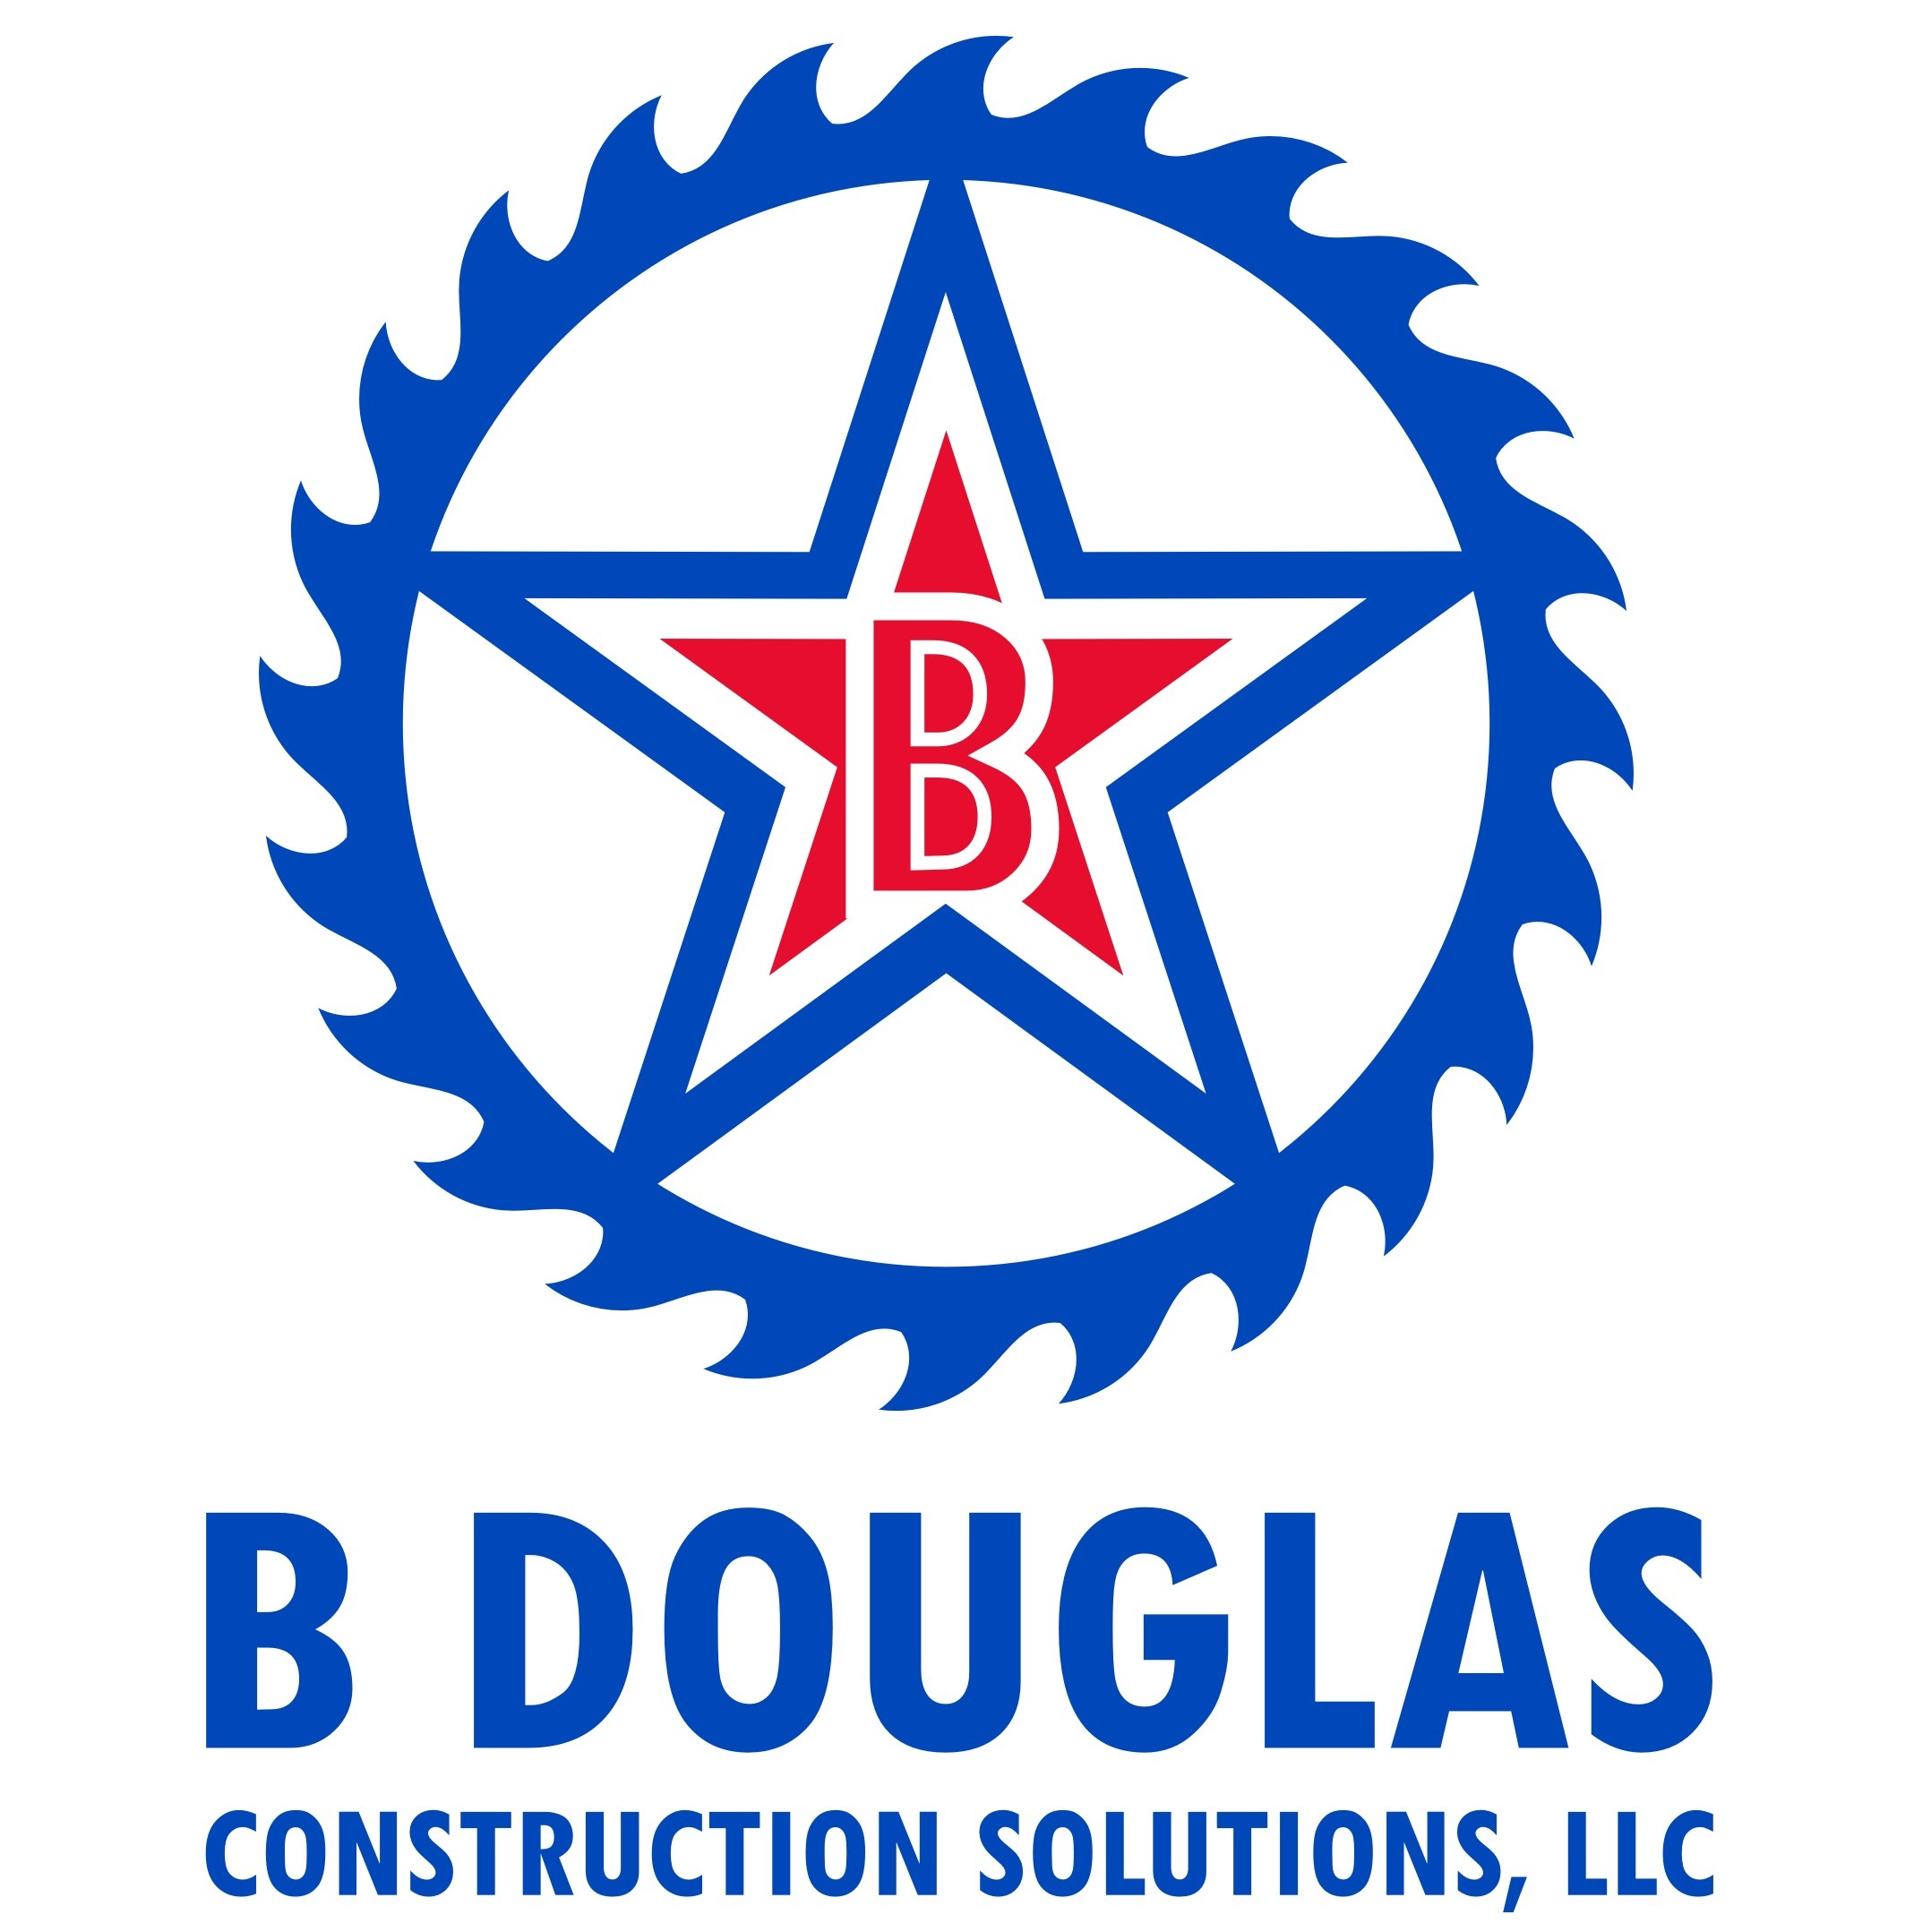 B Douglas Construction Solutions